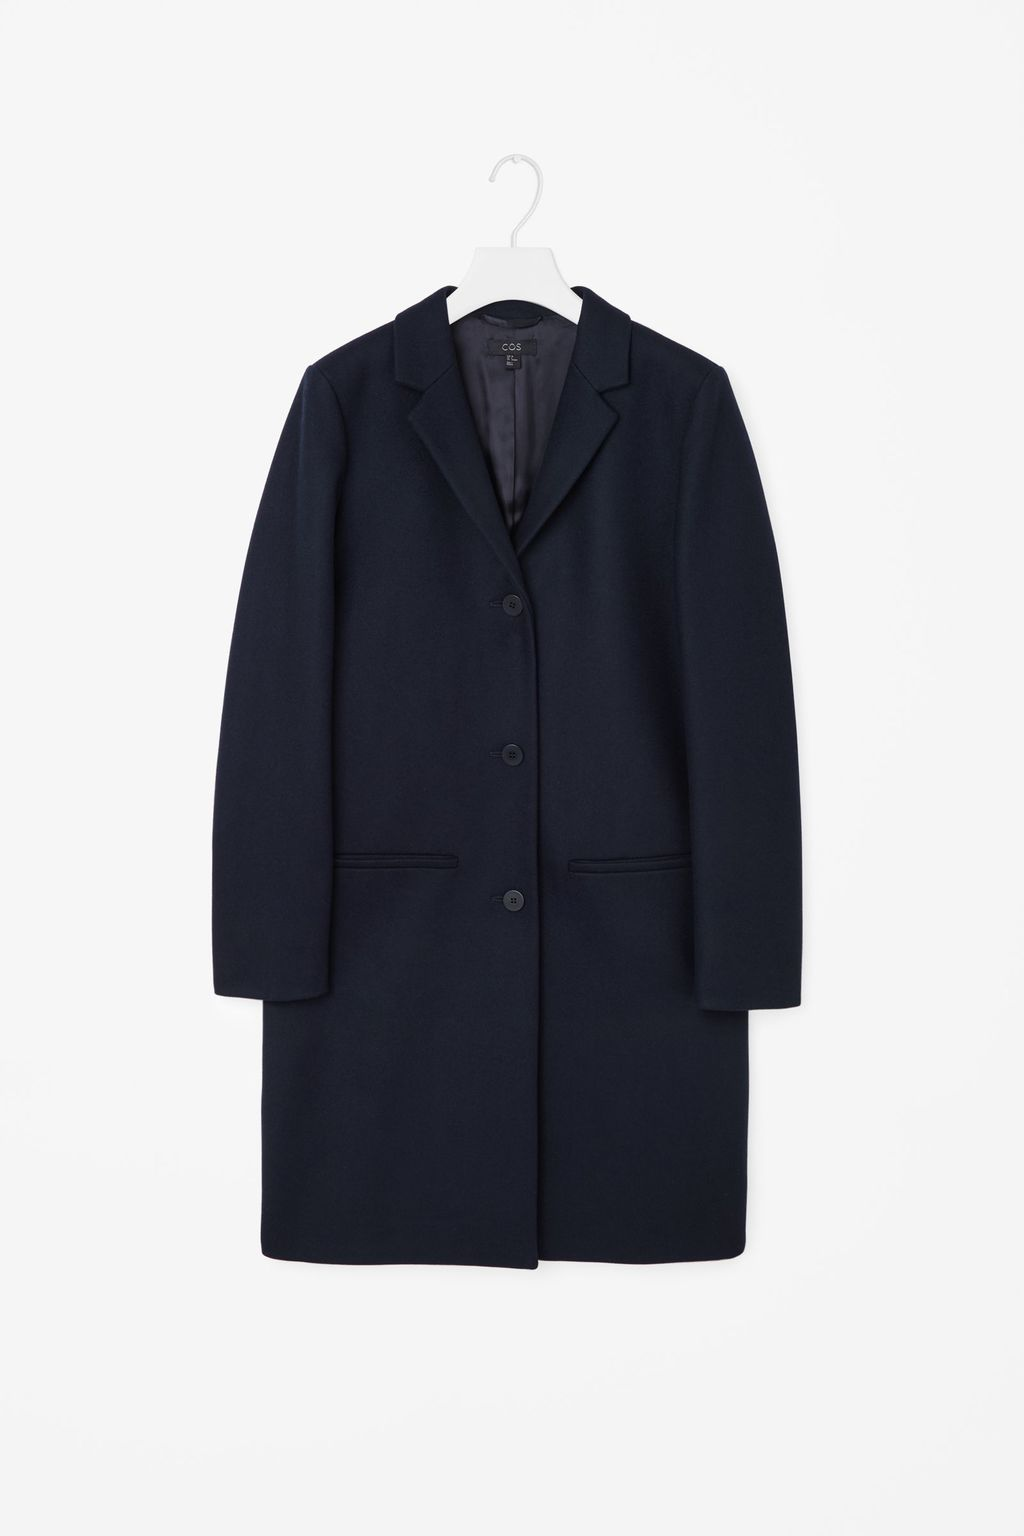 Tailored Wool Coat - pattern: plain; style: single breasted; collar: standard lapel/rever collar; length: mid thigh; predominant colour: navy; occasions: casual, work, creative work; fit: straight cut (boxy); fibres: wool - 100%; sleeve length: long sleeve; sleeve style: standard; collar break: medium; pattern type: fabric; texture group: woven bulky/heavy; season: a/w 2015; wardrobe: basic